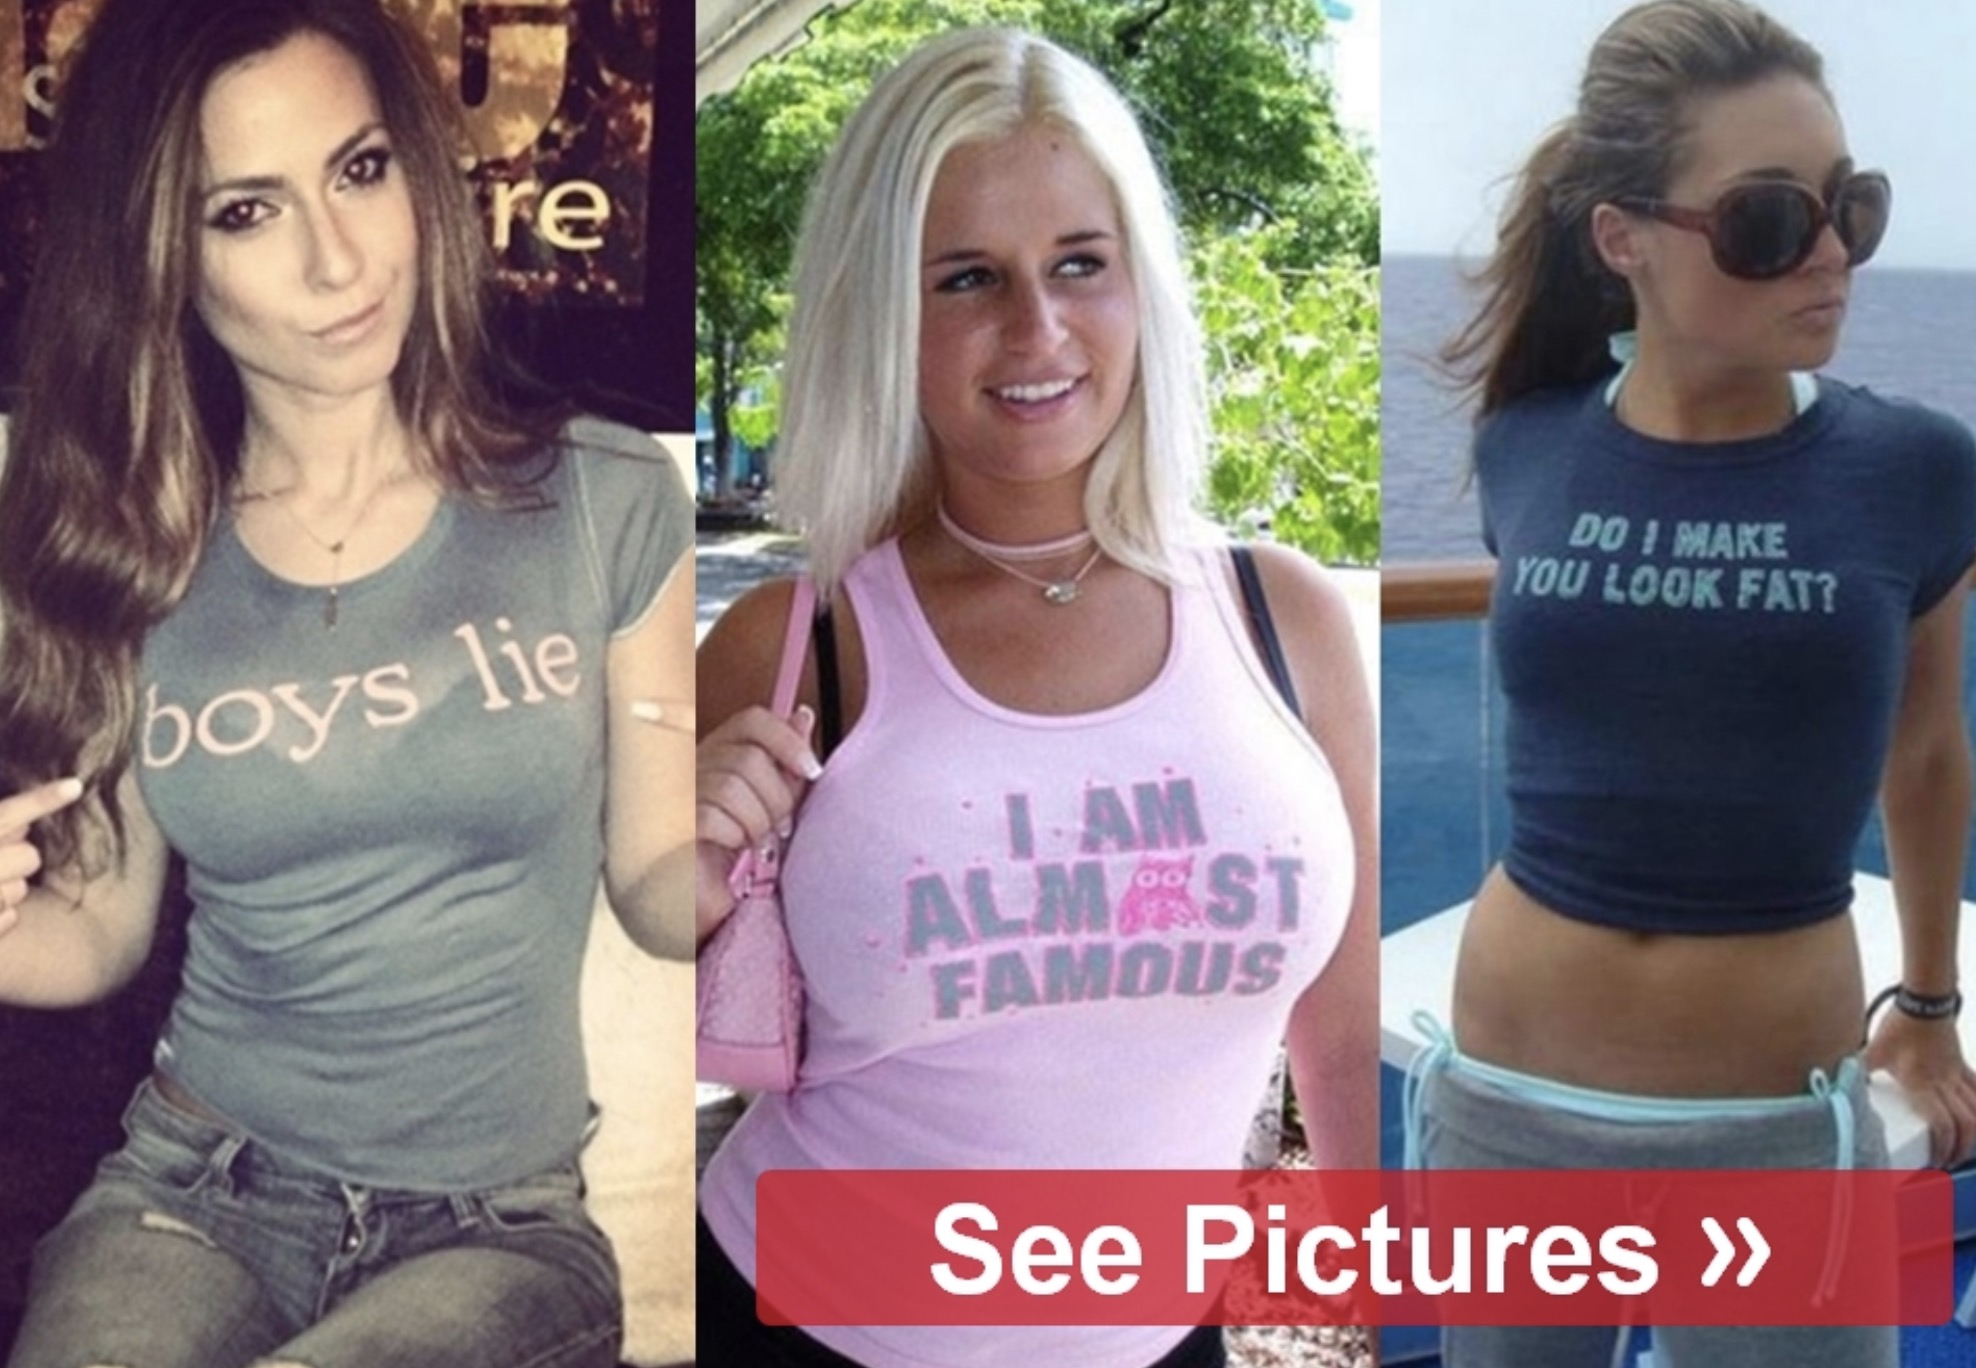 Hilarious T Shirts That Are The Very Definition Of 'Fail'